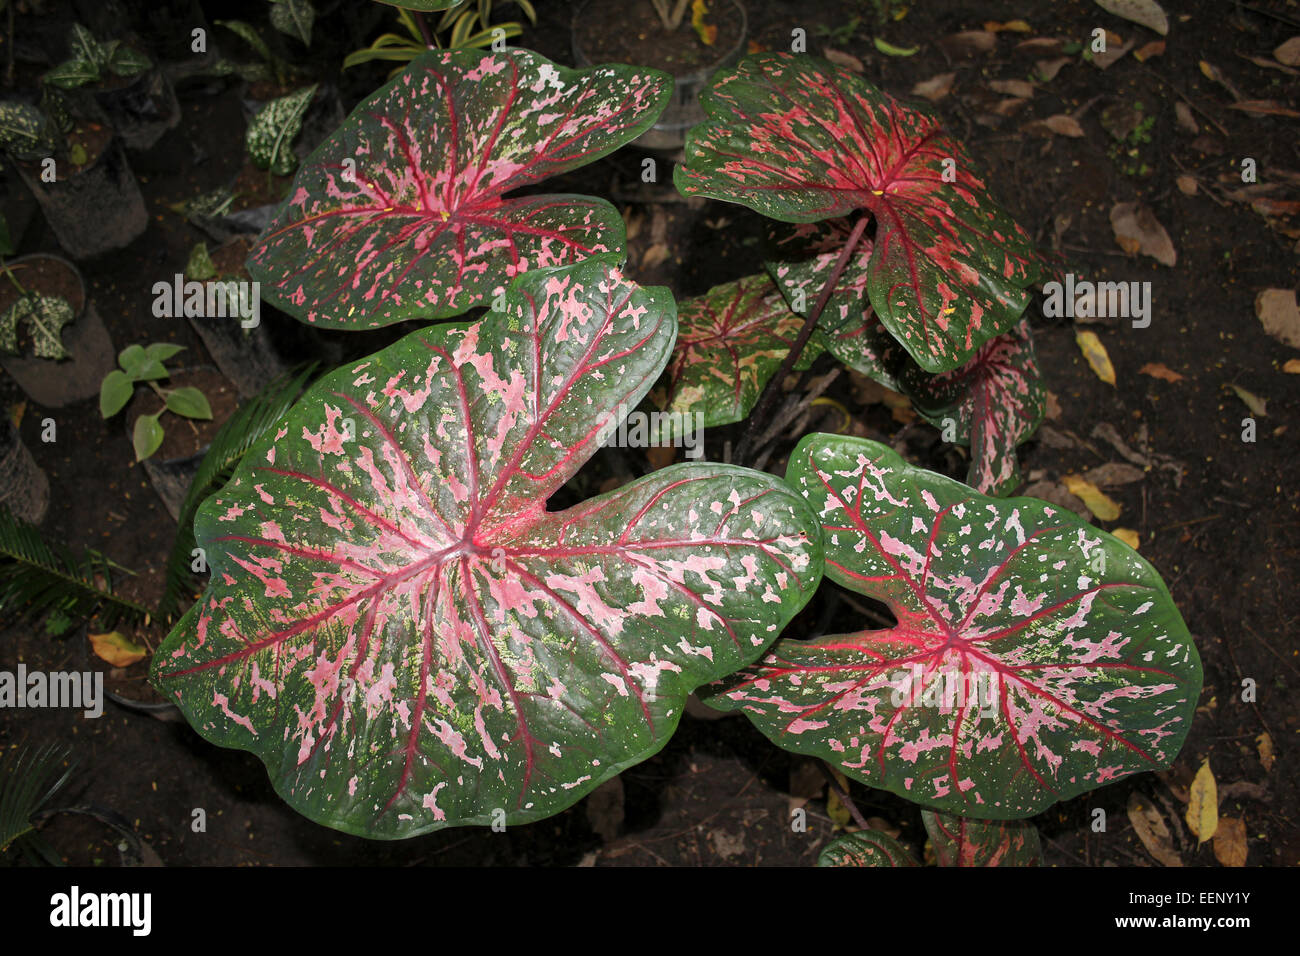 Elephant Ear Leaves (a.k.a Angels Wings, Heart Of Jesus) Fancy-leaved Caladium sp. - Stock Image